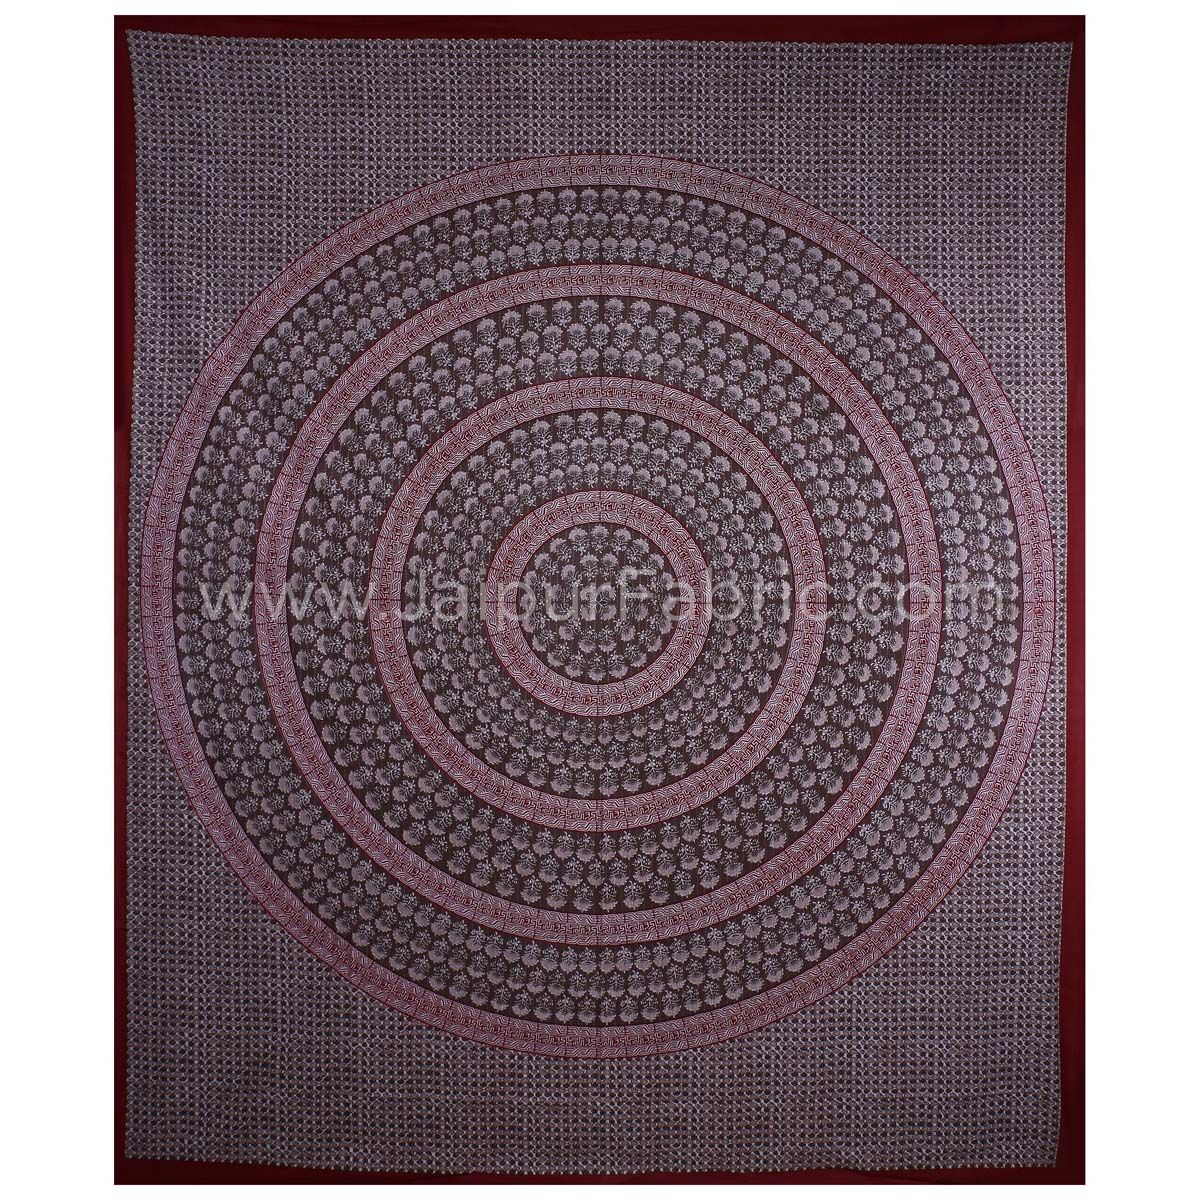 The Maroon Circle of Life Maroon Border Double BedSheet